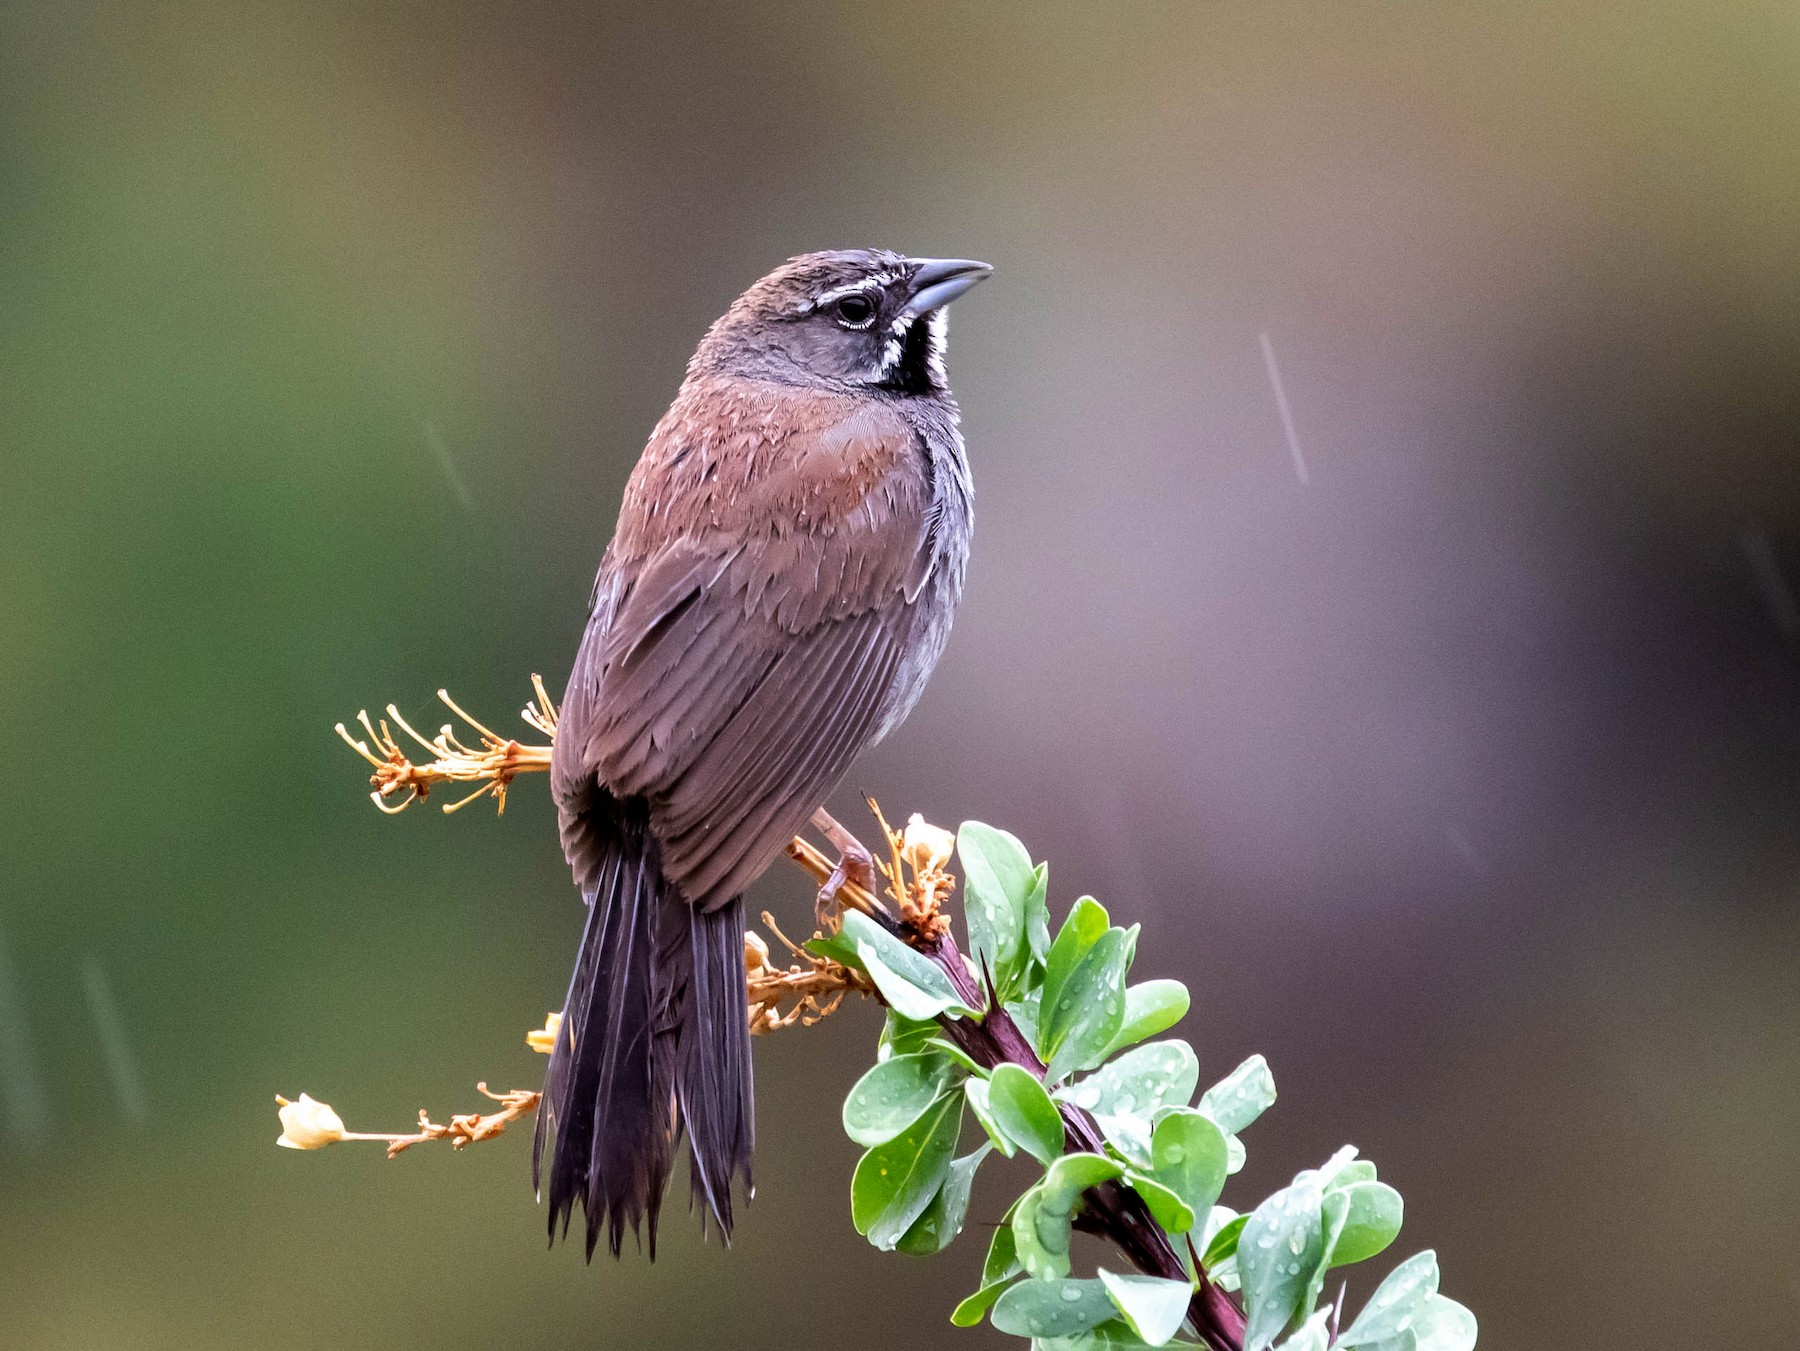 Five-striped Sparrow - Shawn Taylor